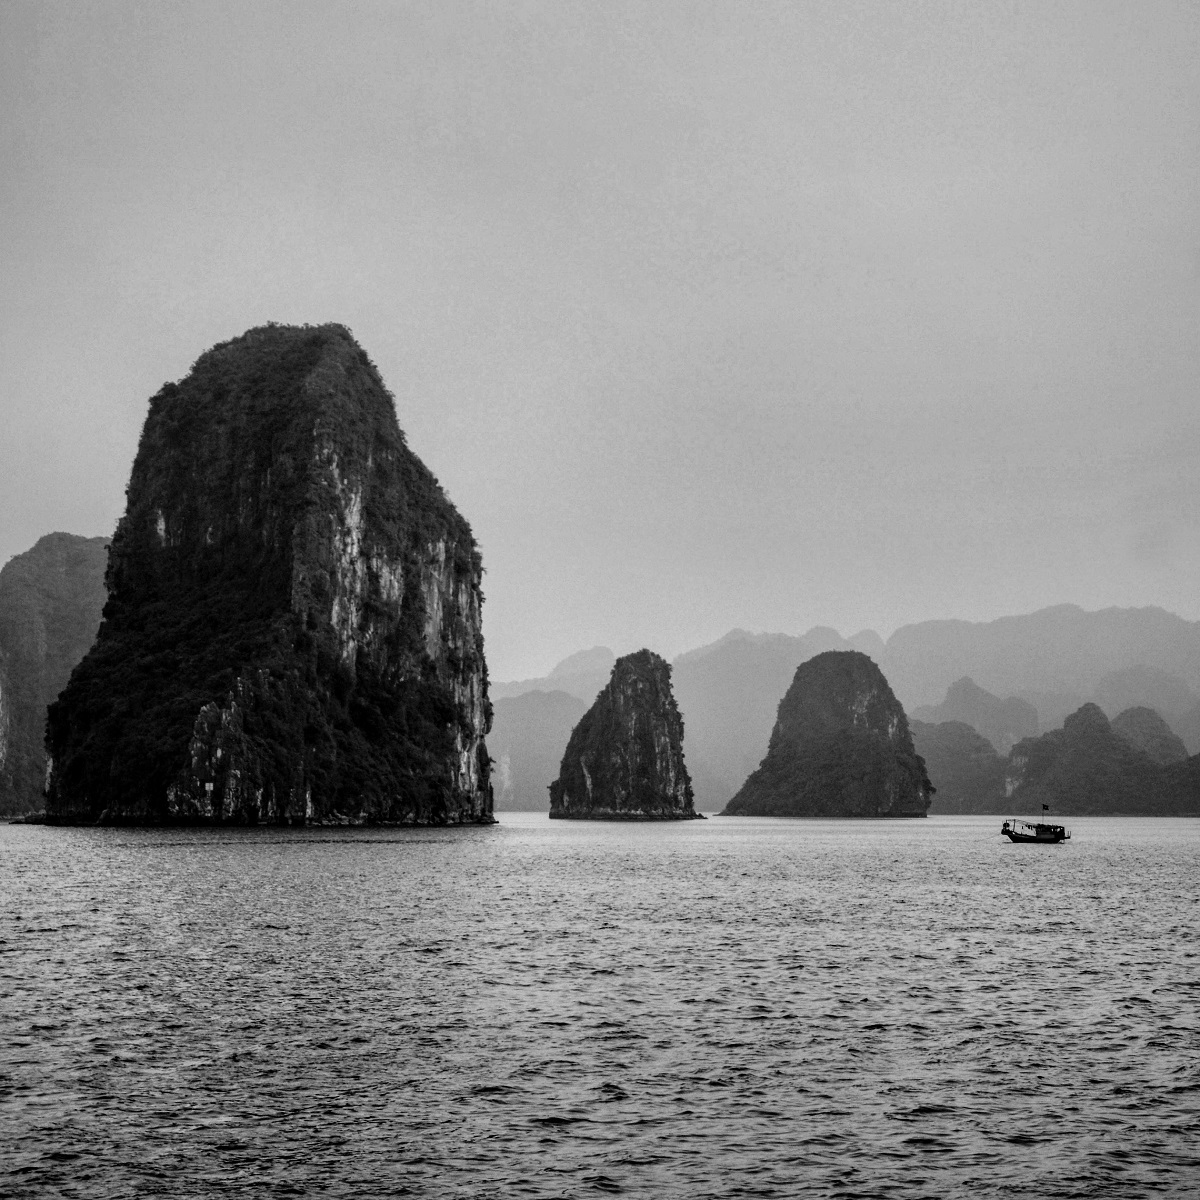 Ha Long Bay, a UNESCO natural heritage site in the northern province of Quang Ninh, in one early winter morning.